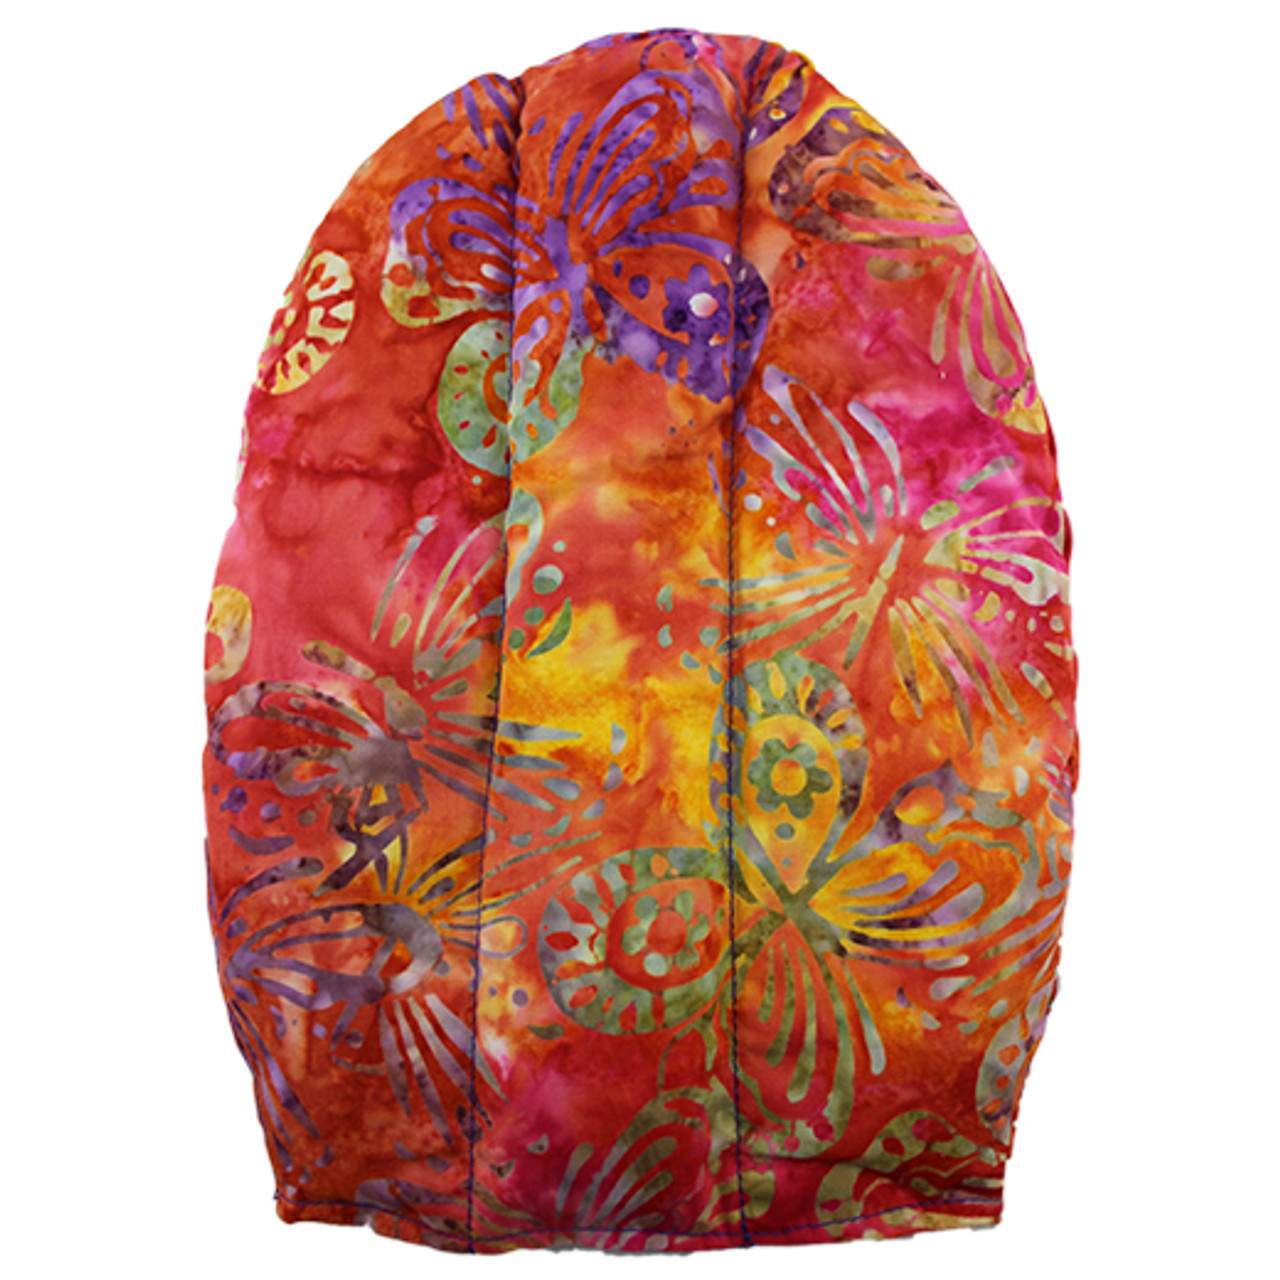 Hand Mitt Provide Relief from Hand and Wrist Pain - Batik Butterfly Fabric